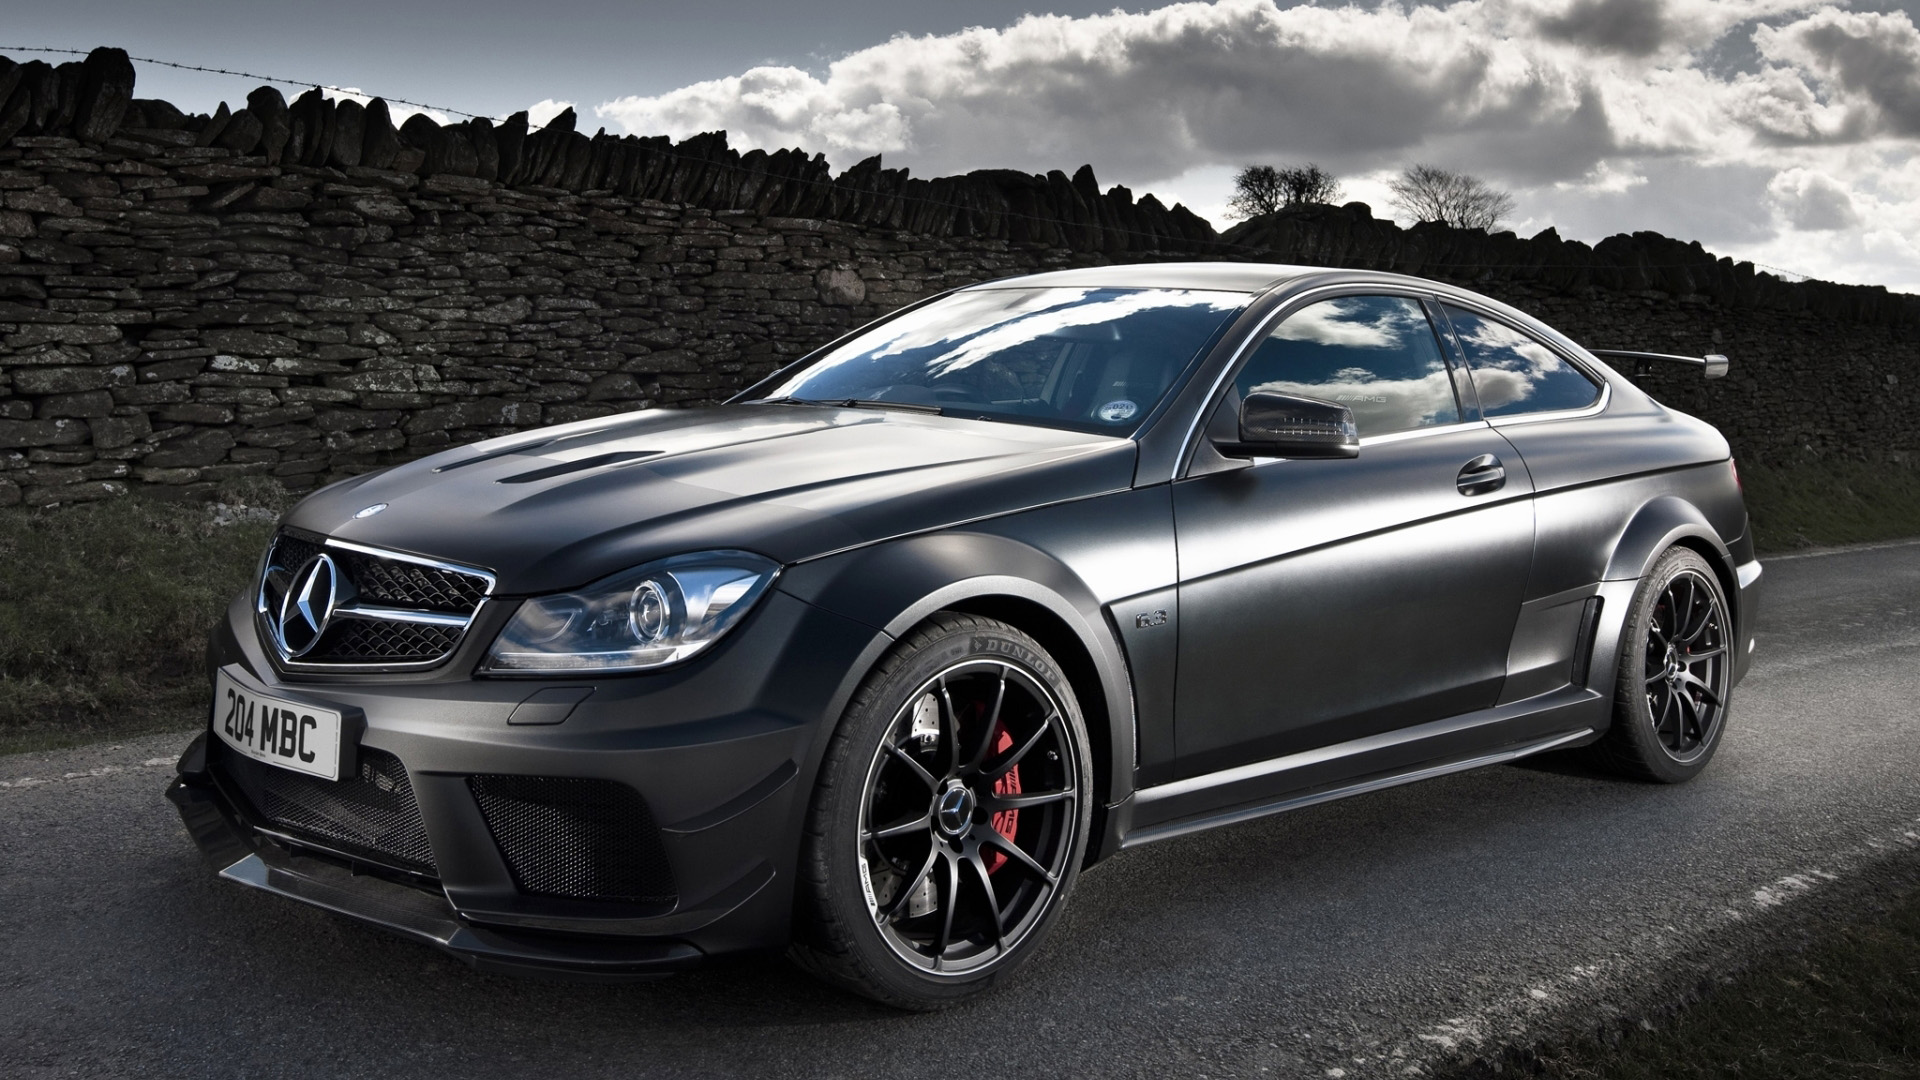 Mercedes C63 Amg images of desktop